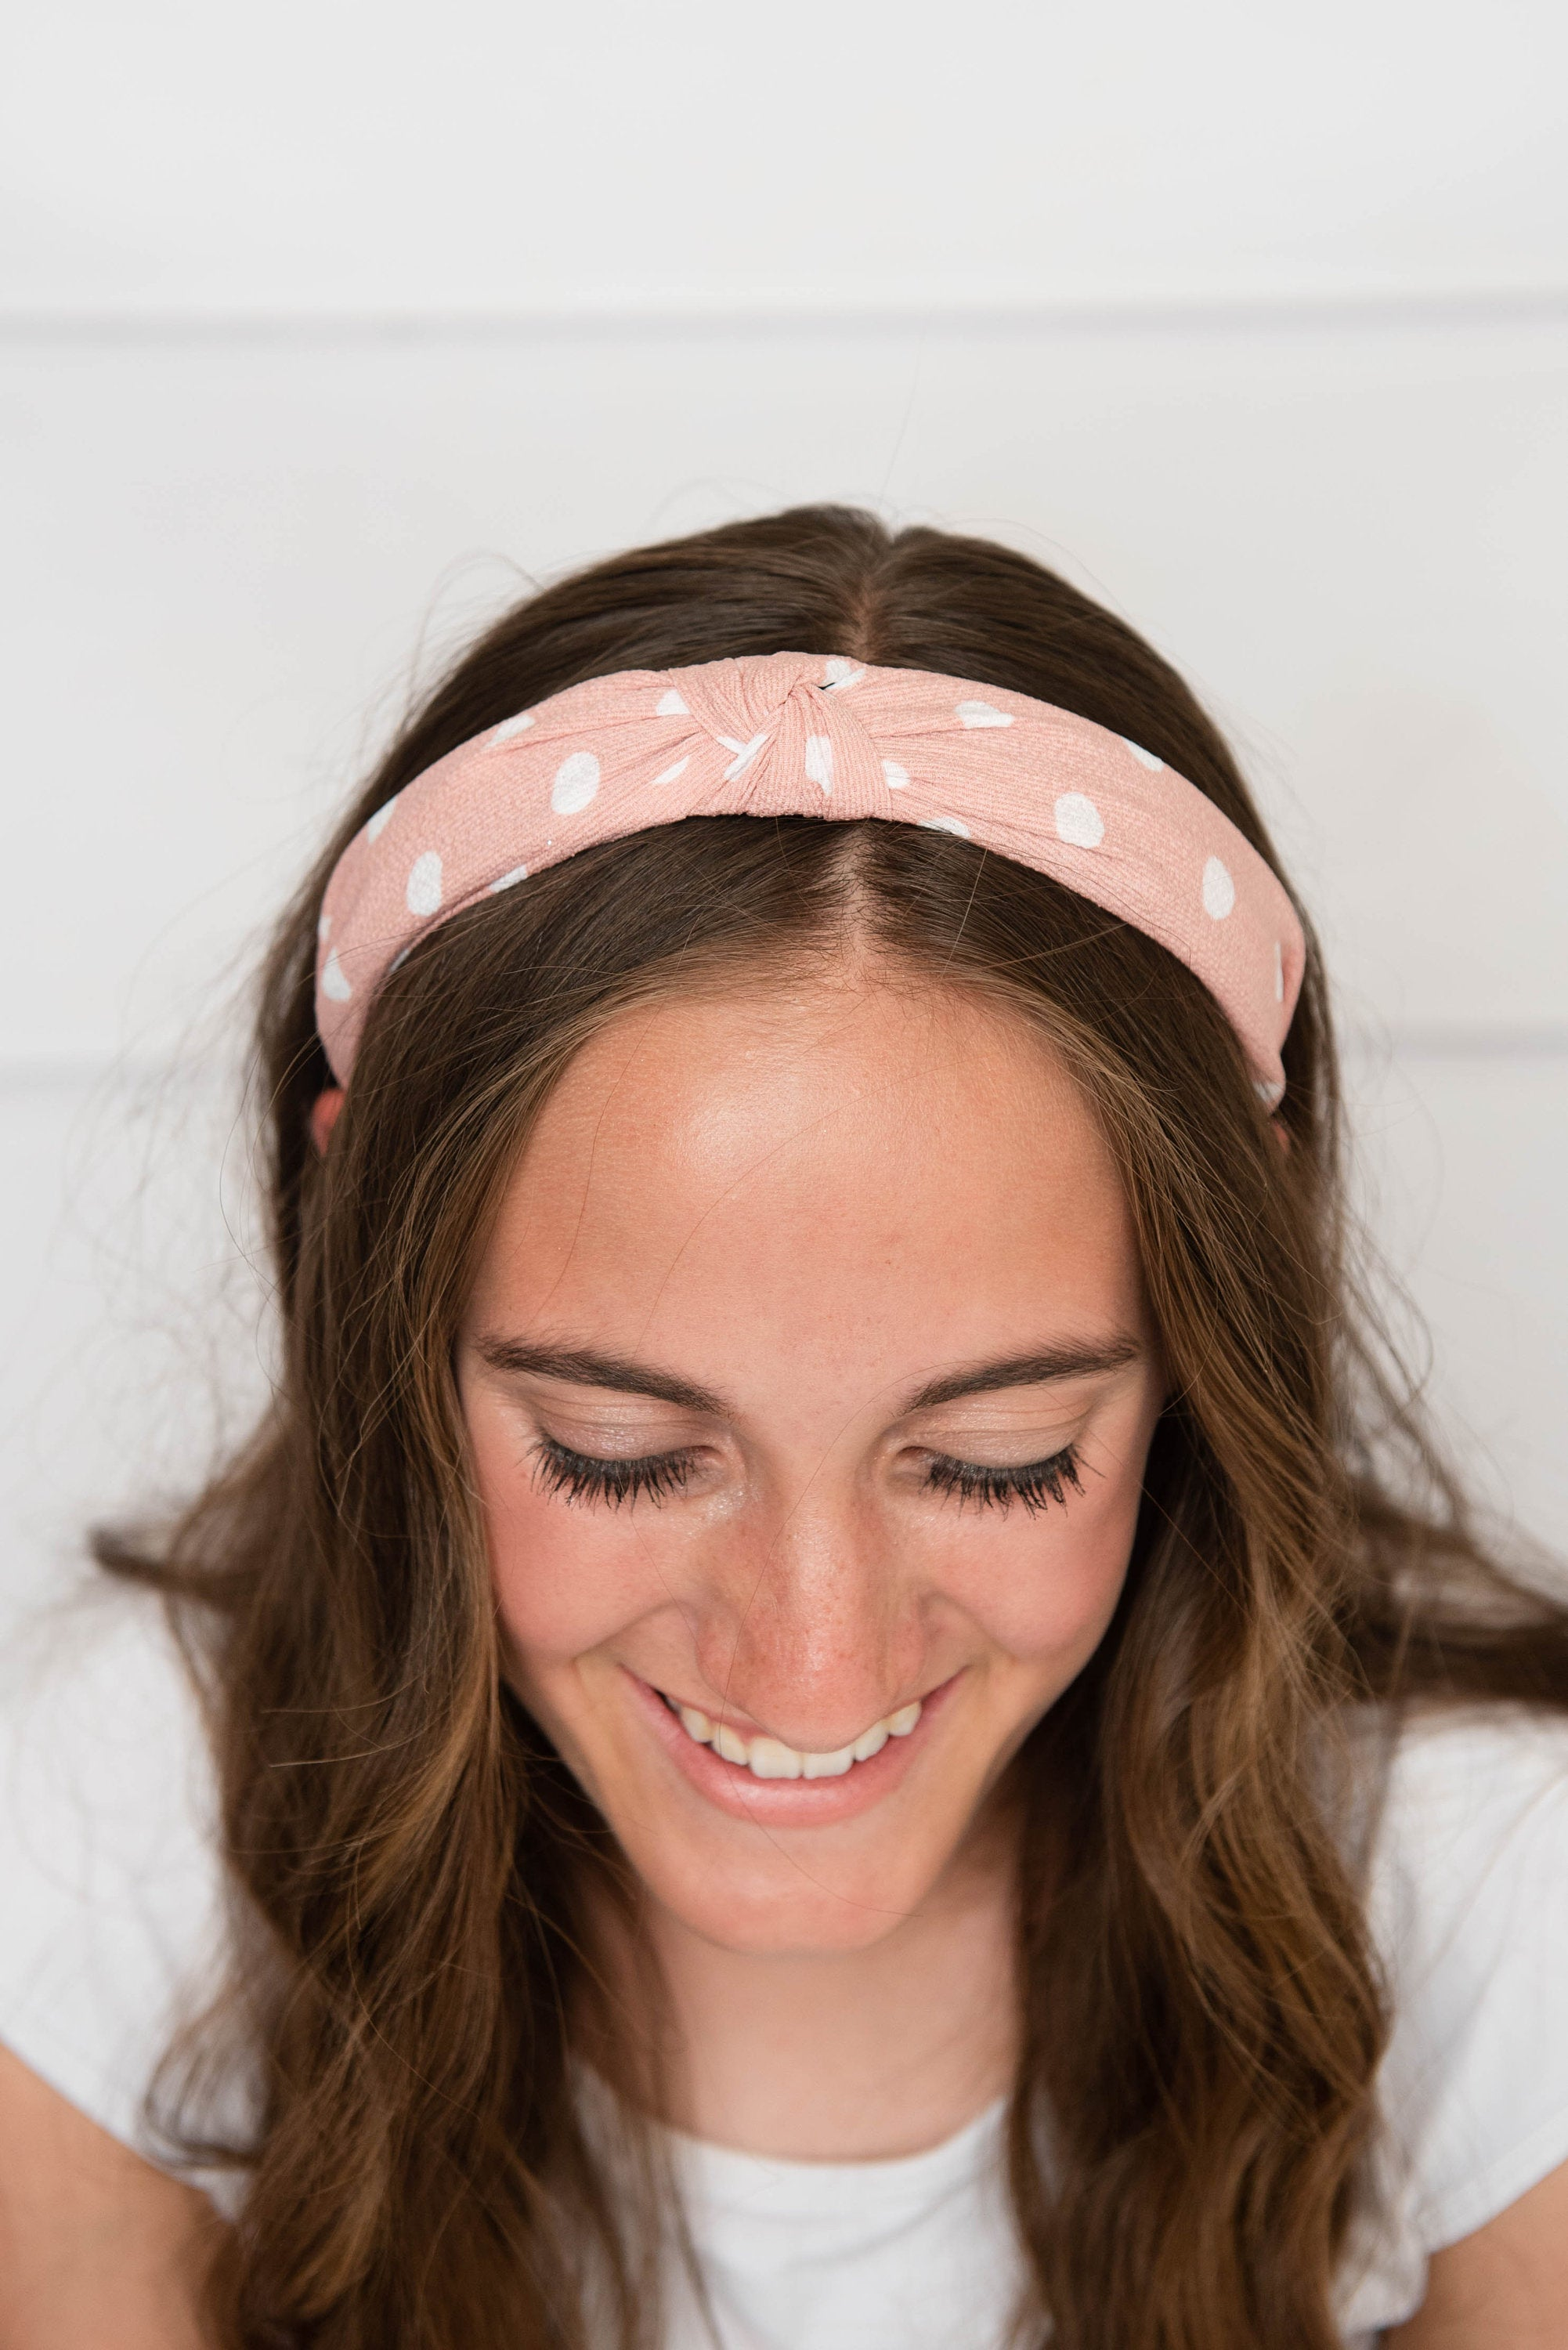 Pink knotted hard headband for girl, womens hard headband for women, pink girl headband, knotted headband for women's headband, pink turban